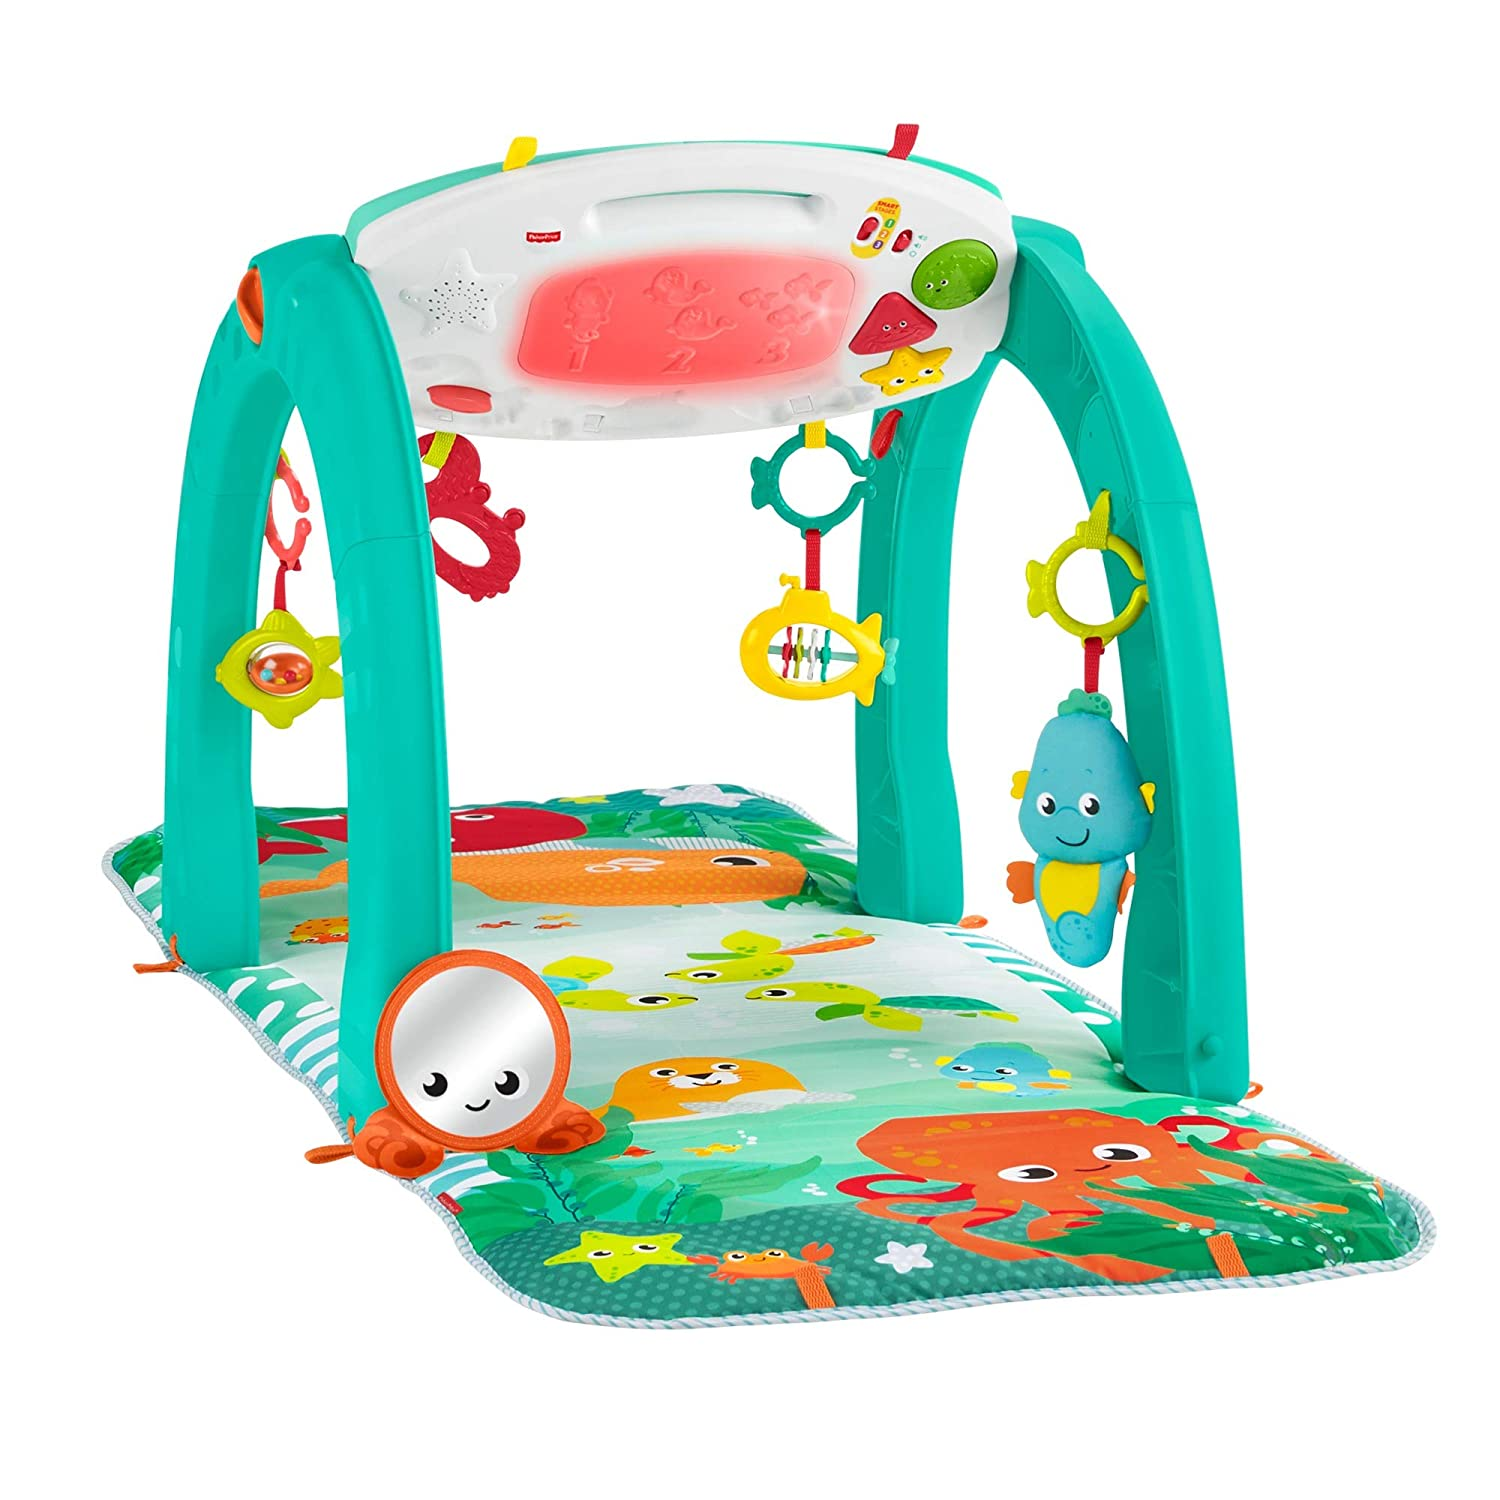 Fisher-Price 4-in-1 Ocean Activity Center, Blue/Green FXT05